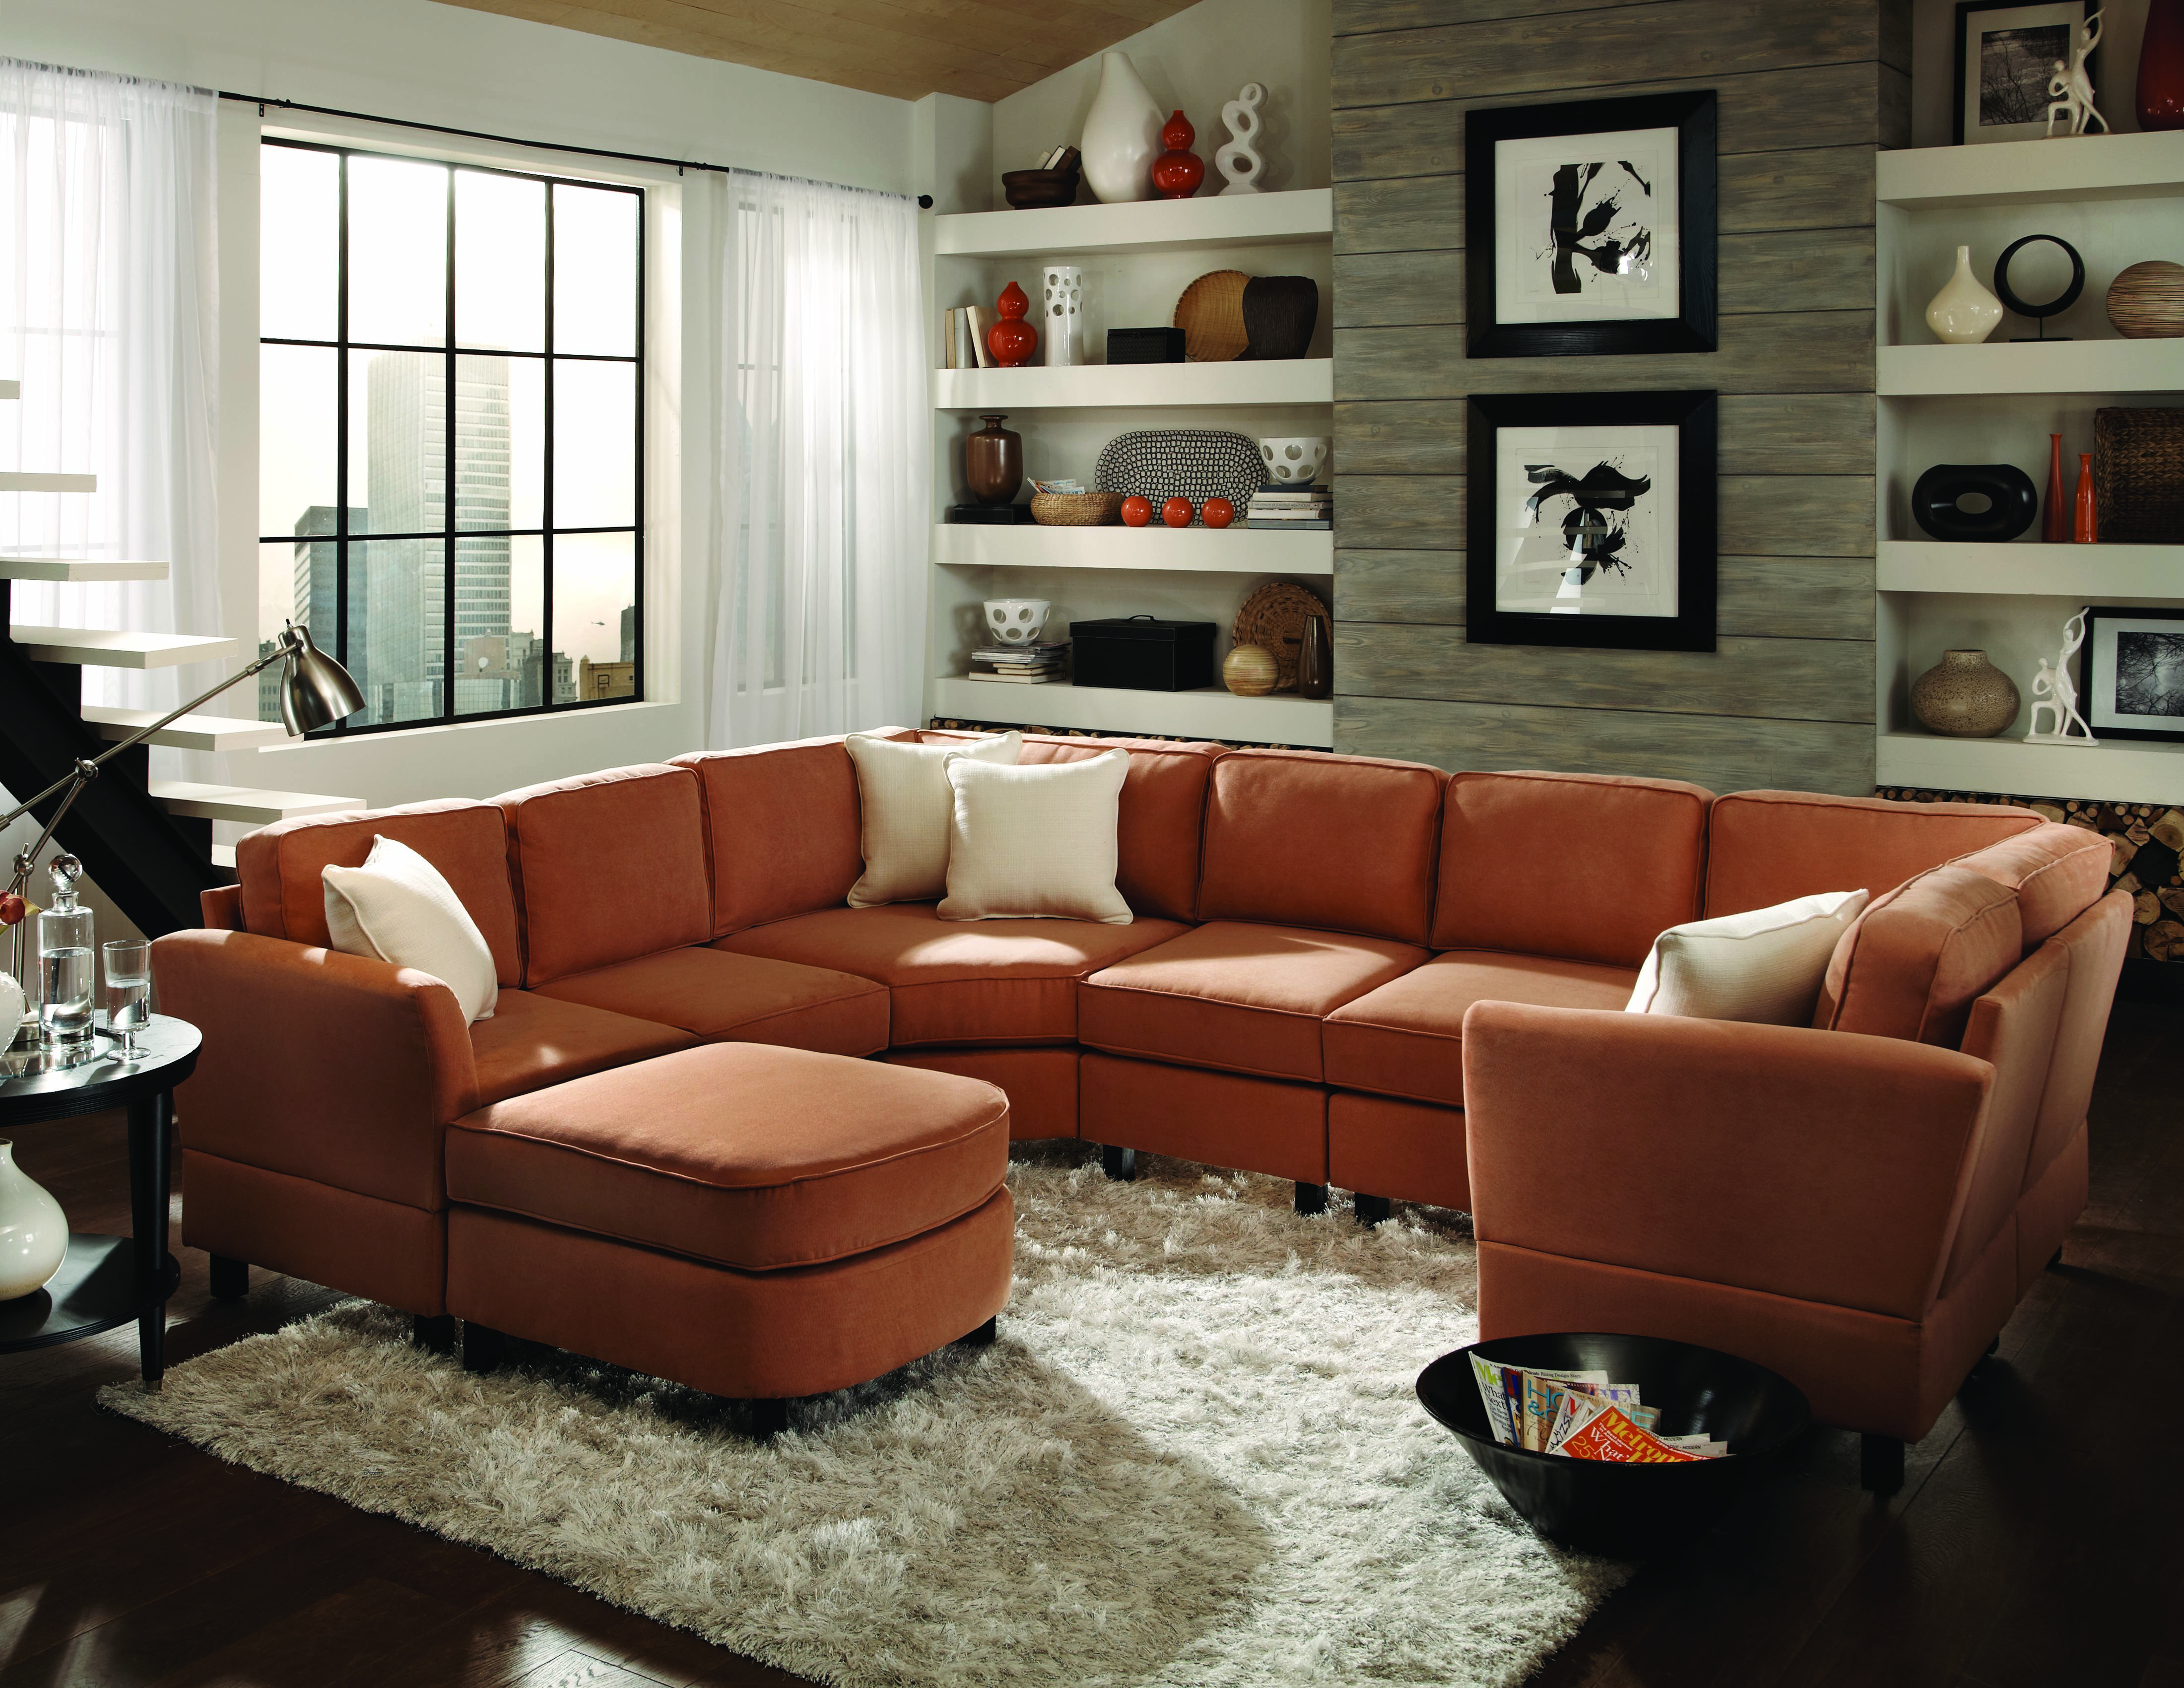 Best sofas in the usa furniture for small spaces made in - Best sectionals for small spaces ...